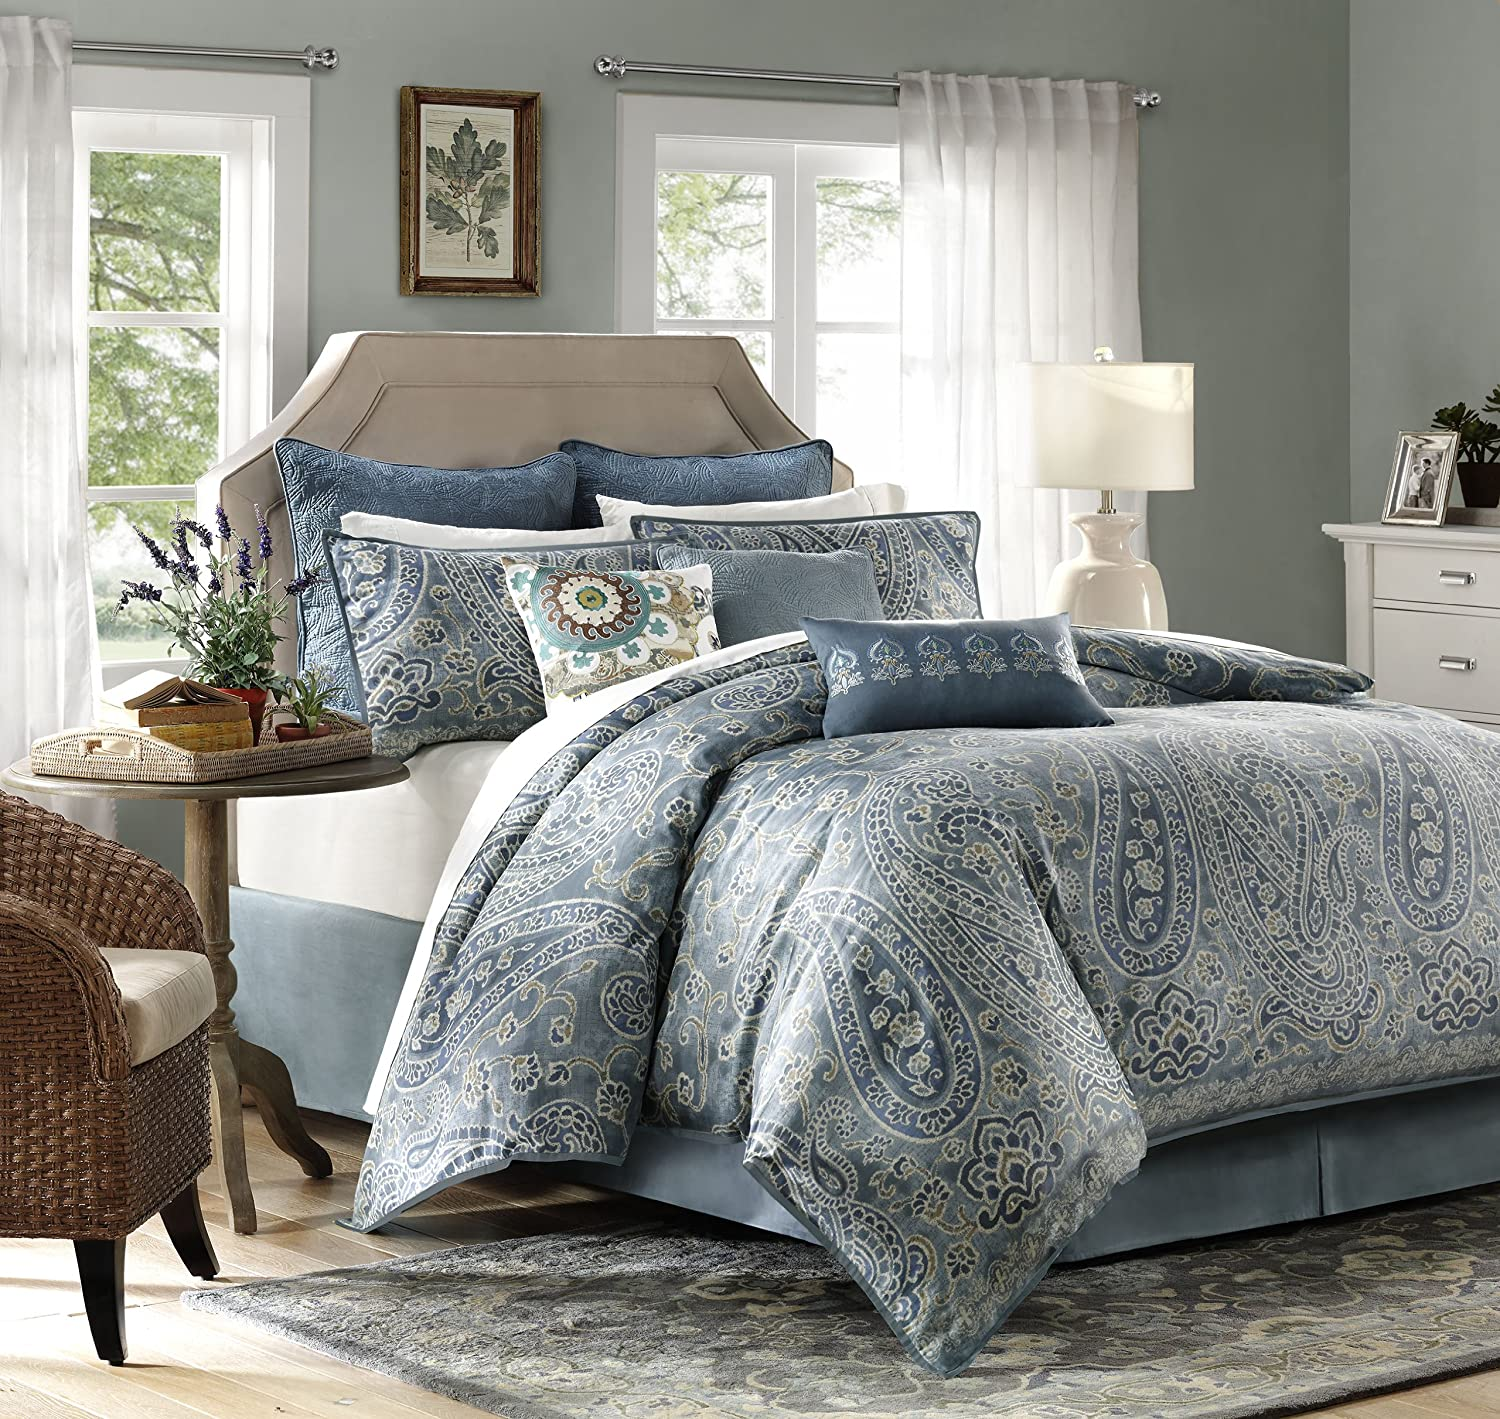 California king bedding - What you need to know about jacquard bedding ...